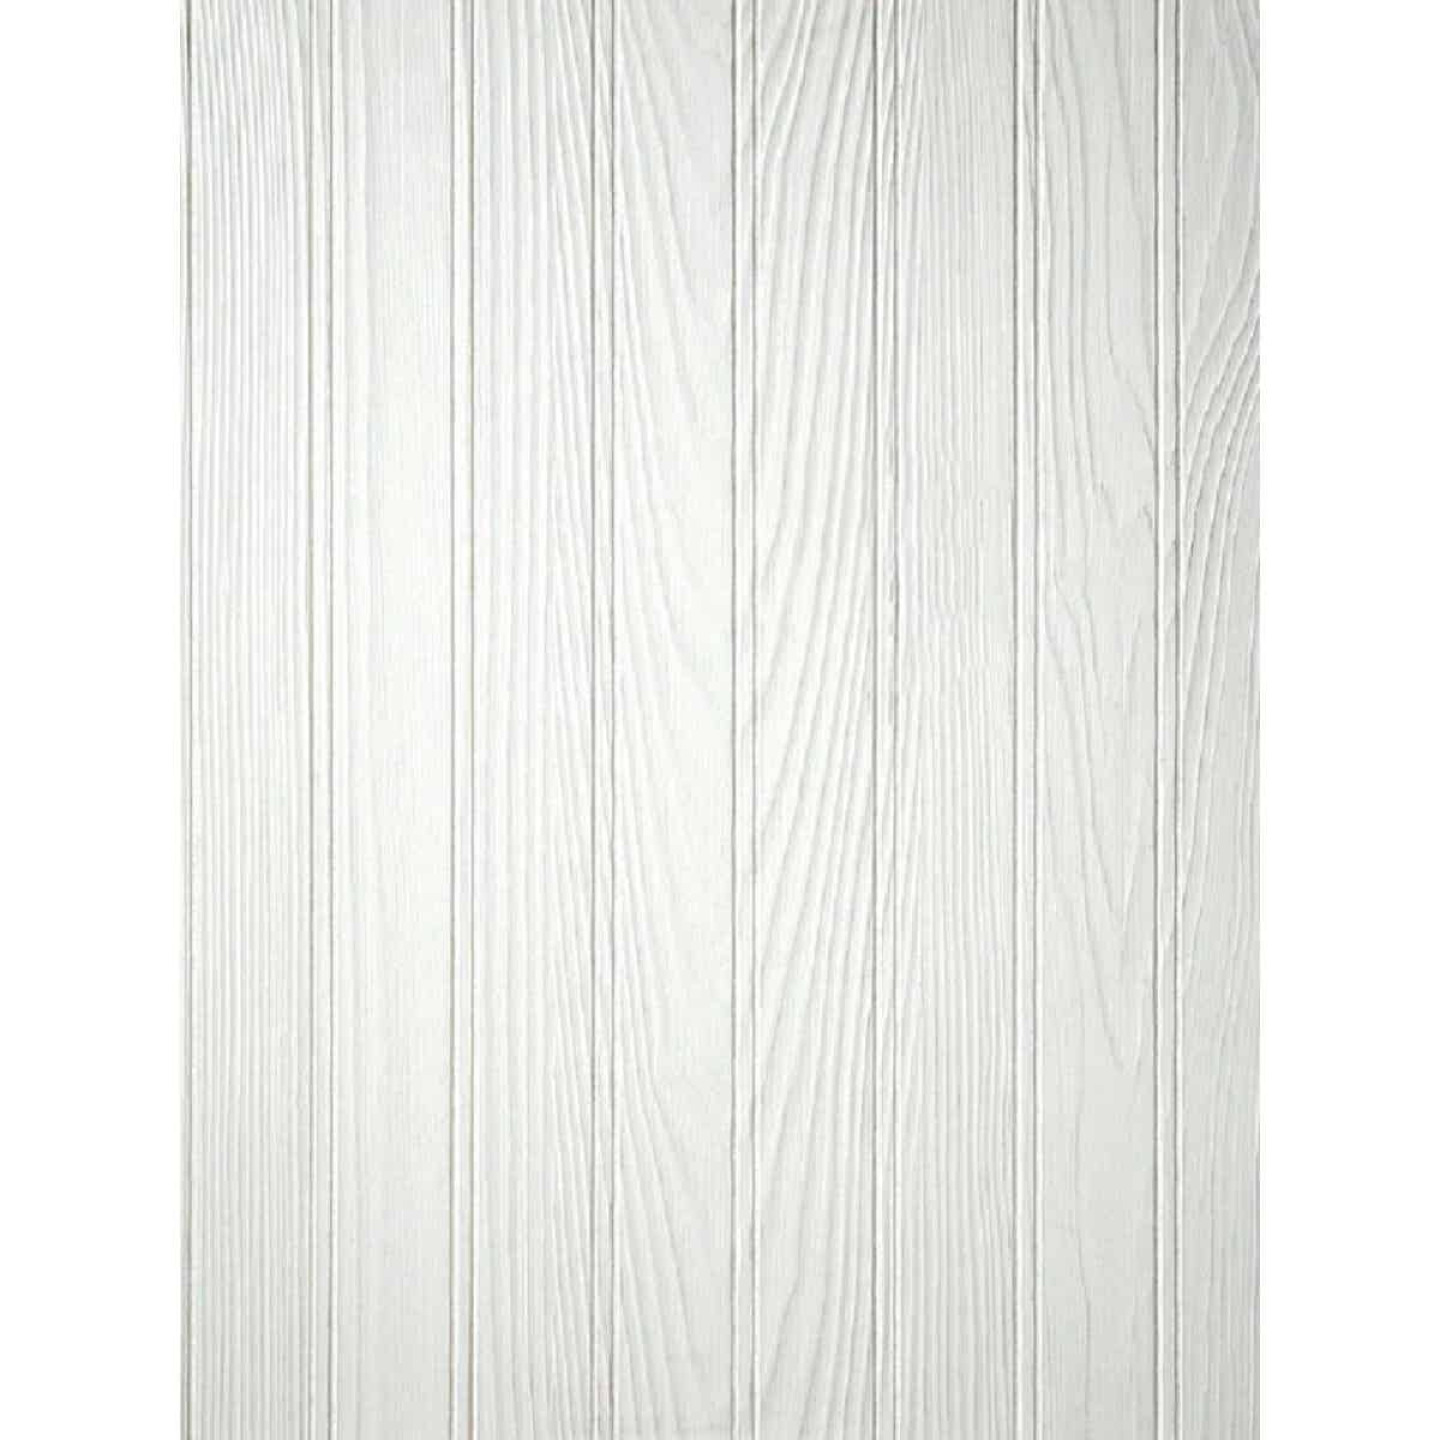 DPI 4 Ft. x 8 Ft. x 3/16 In. Paintable White Beaded Pinetex Wall Paneling Image 1